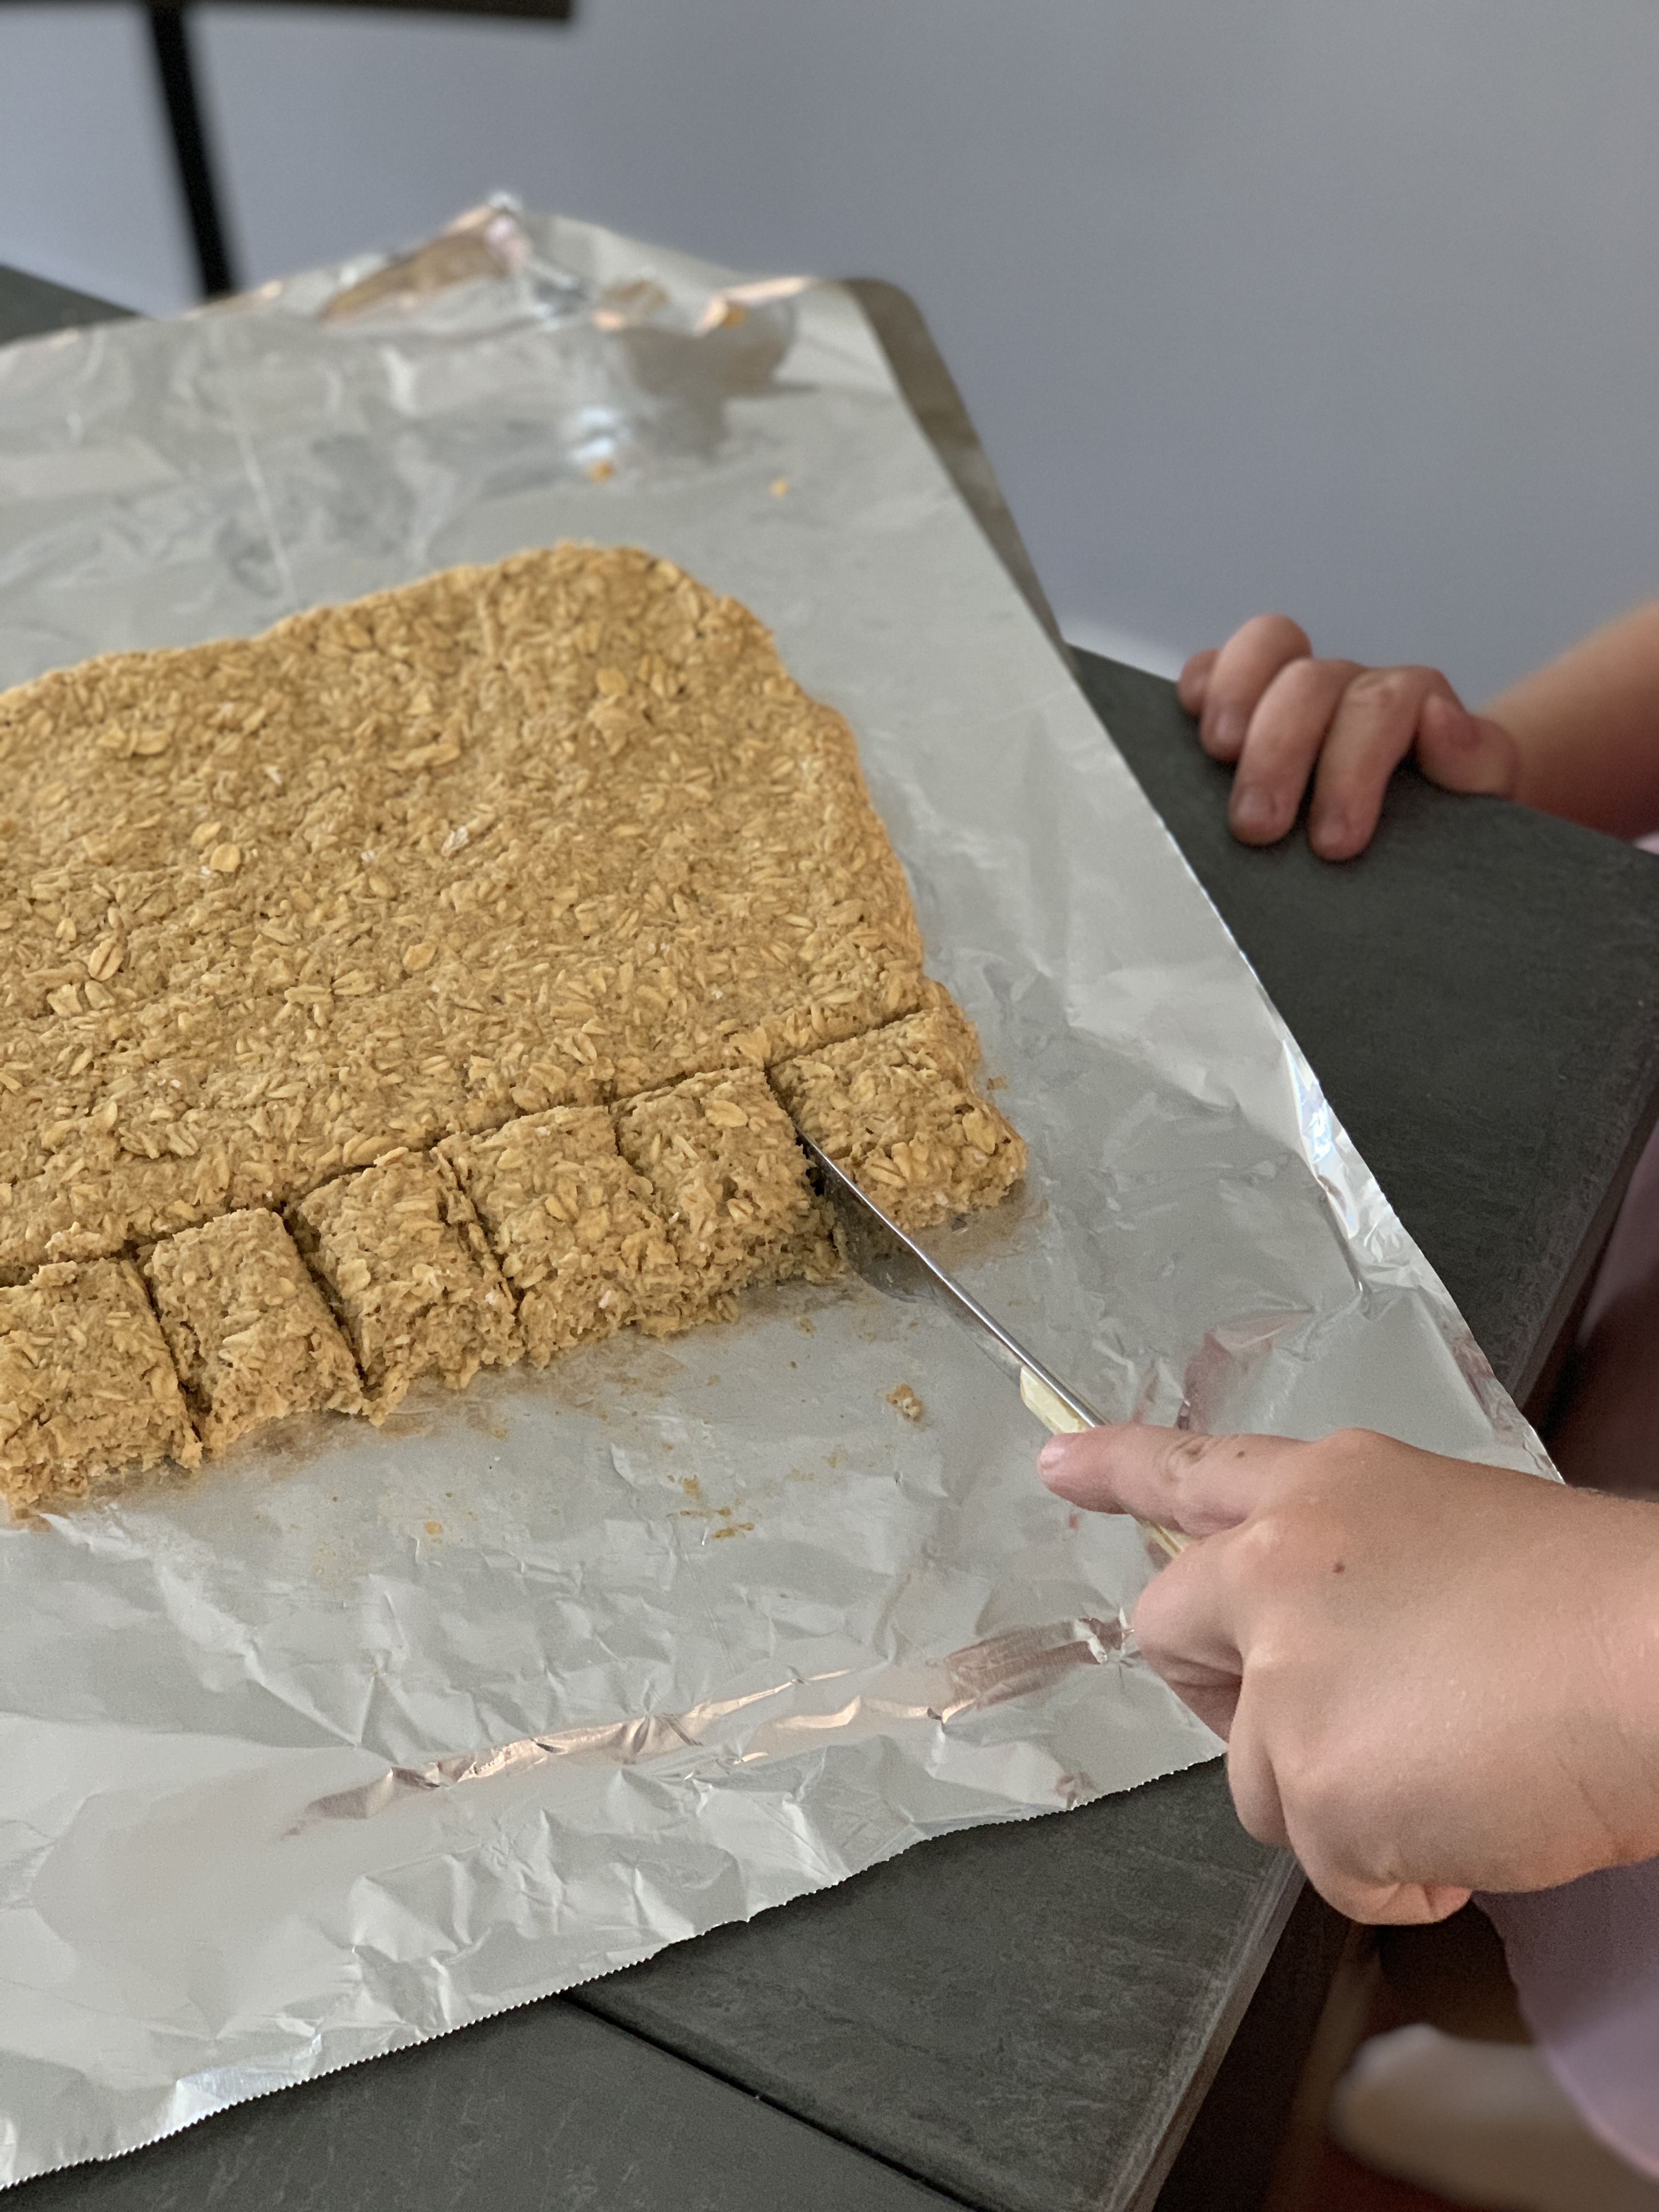 Make this easy dog treat recipe with your kids to donate to shelters | For Animals For Earth